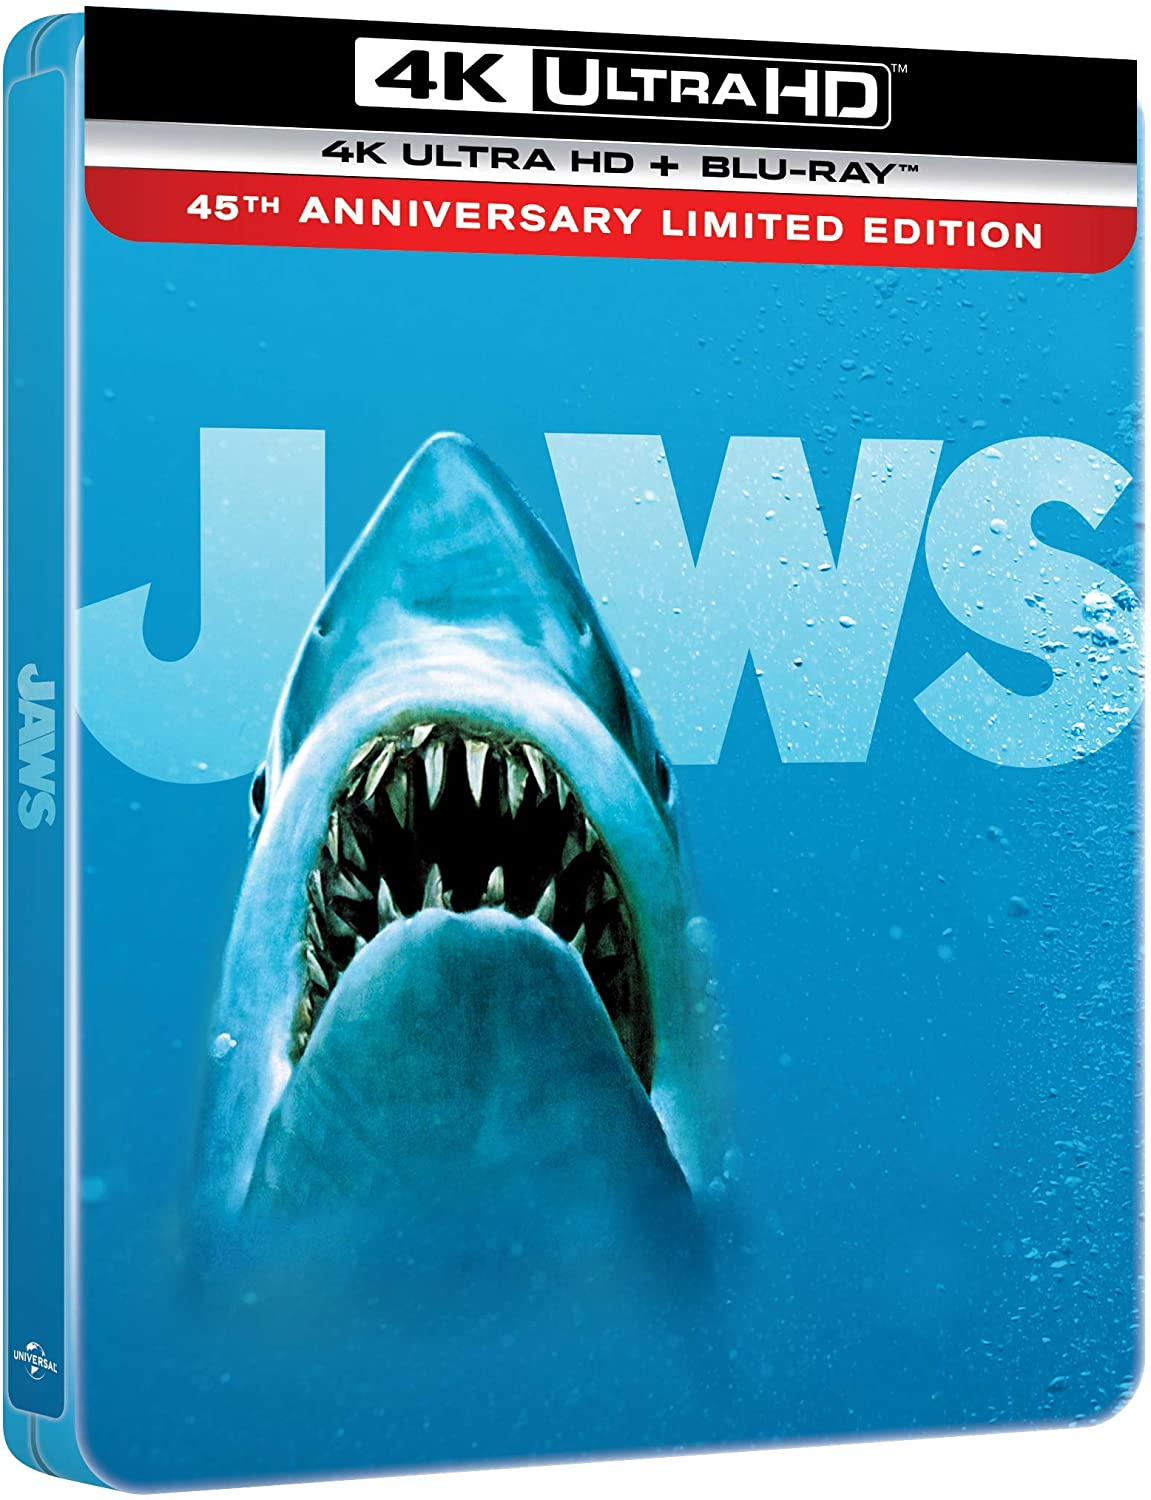 Jaws Limited Edition Steelbook 4K Ultra HD Blu-Ray UK Cover Artwork